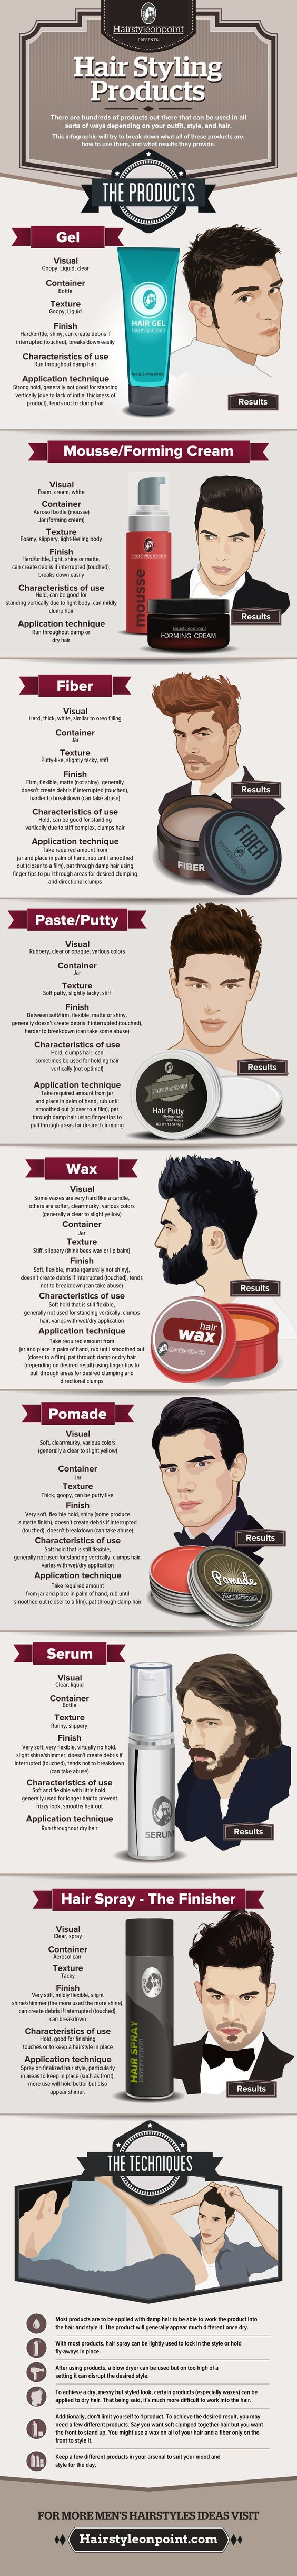 Simple Guide To Men S Hairstyling Products And How To Use Them Infographic Cool Hairstyles Hair Styles Haircuts For Men